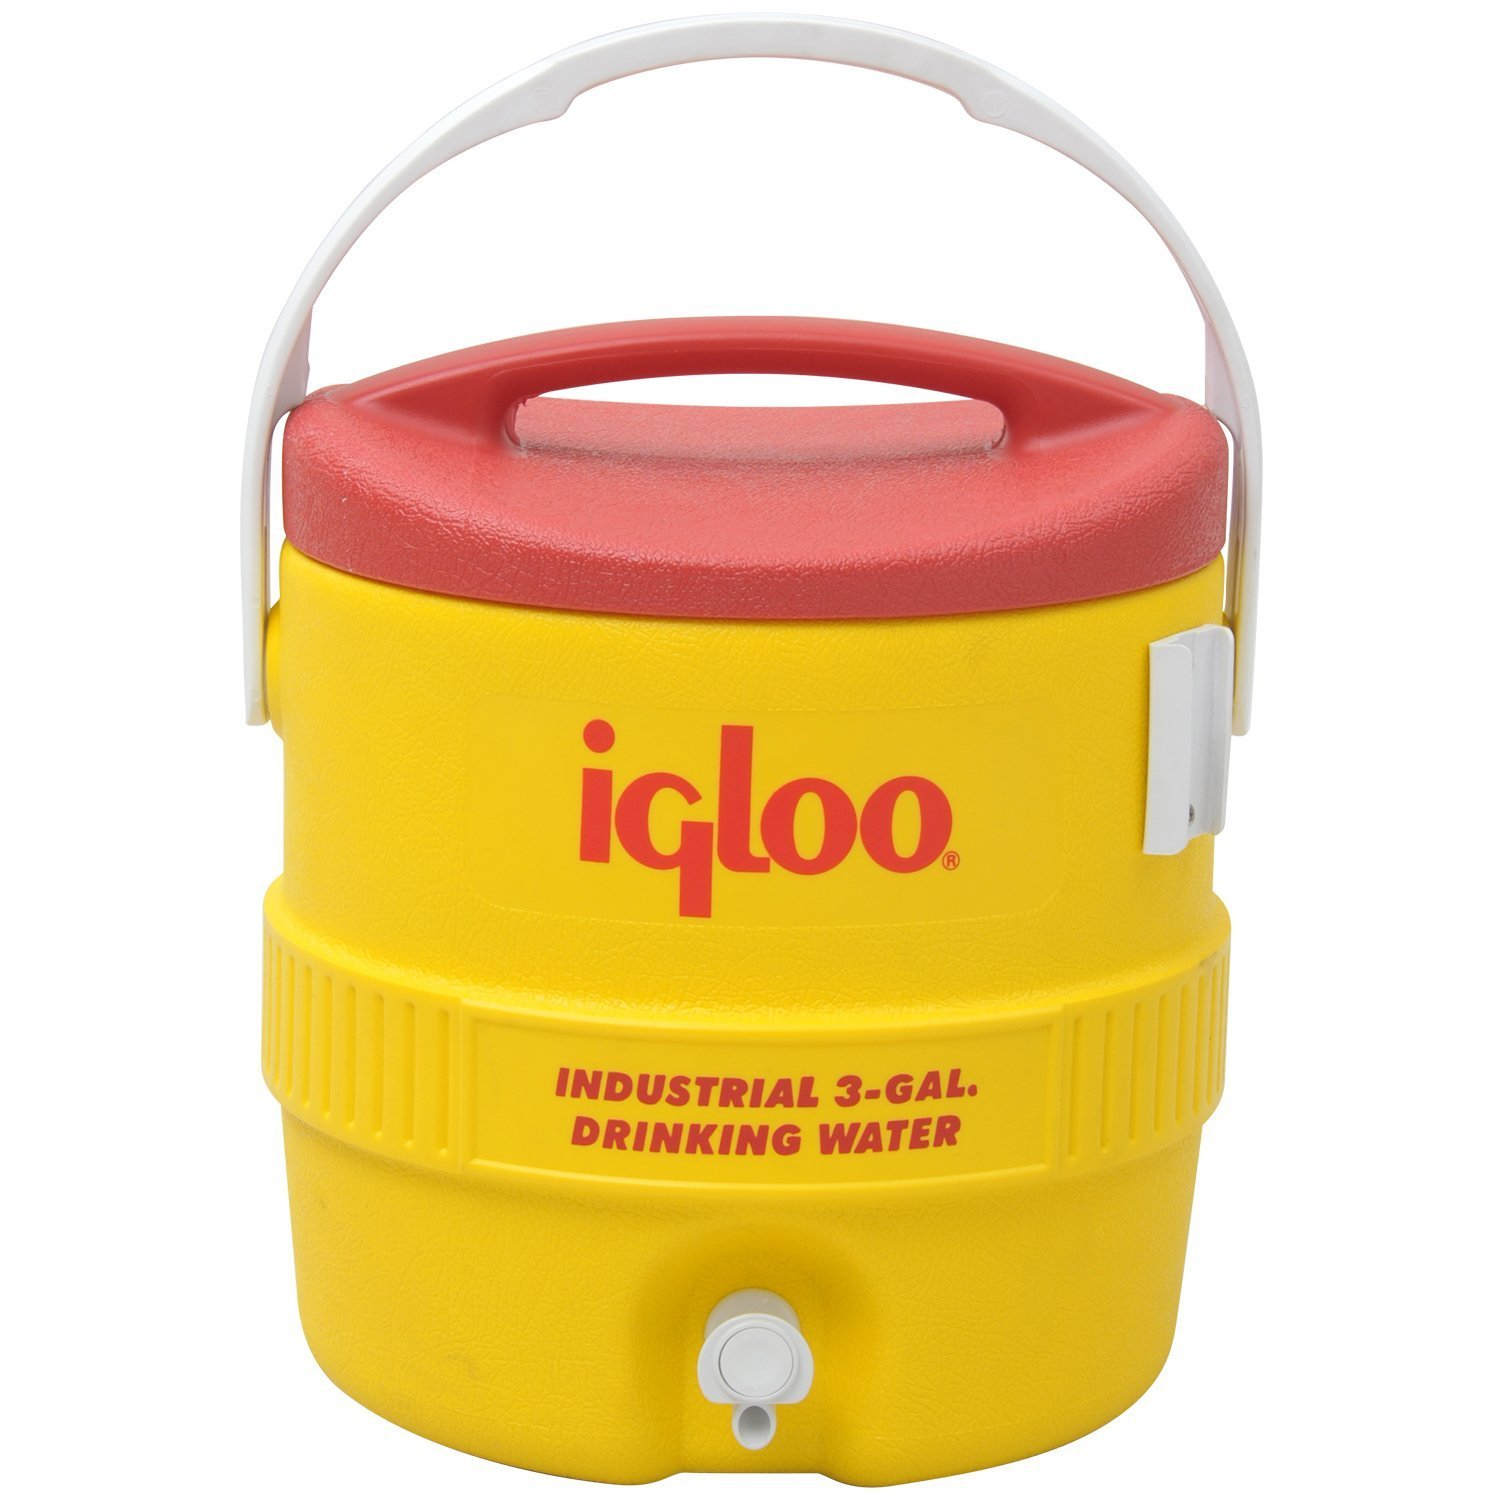 SEPTLS385431 - Igloo 400 Series Coolers - 431